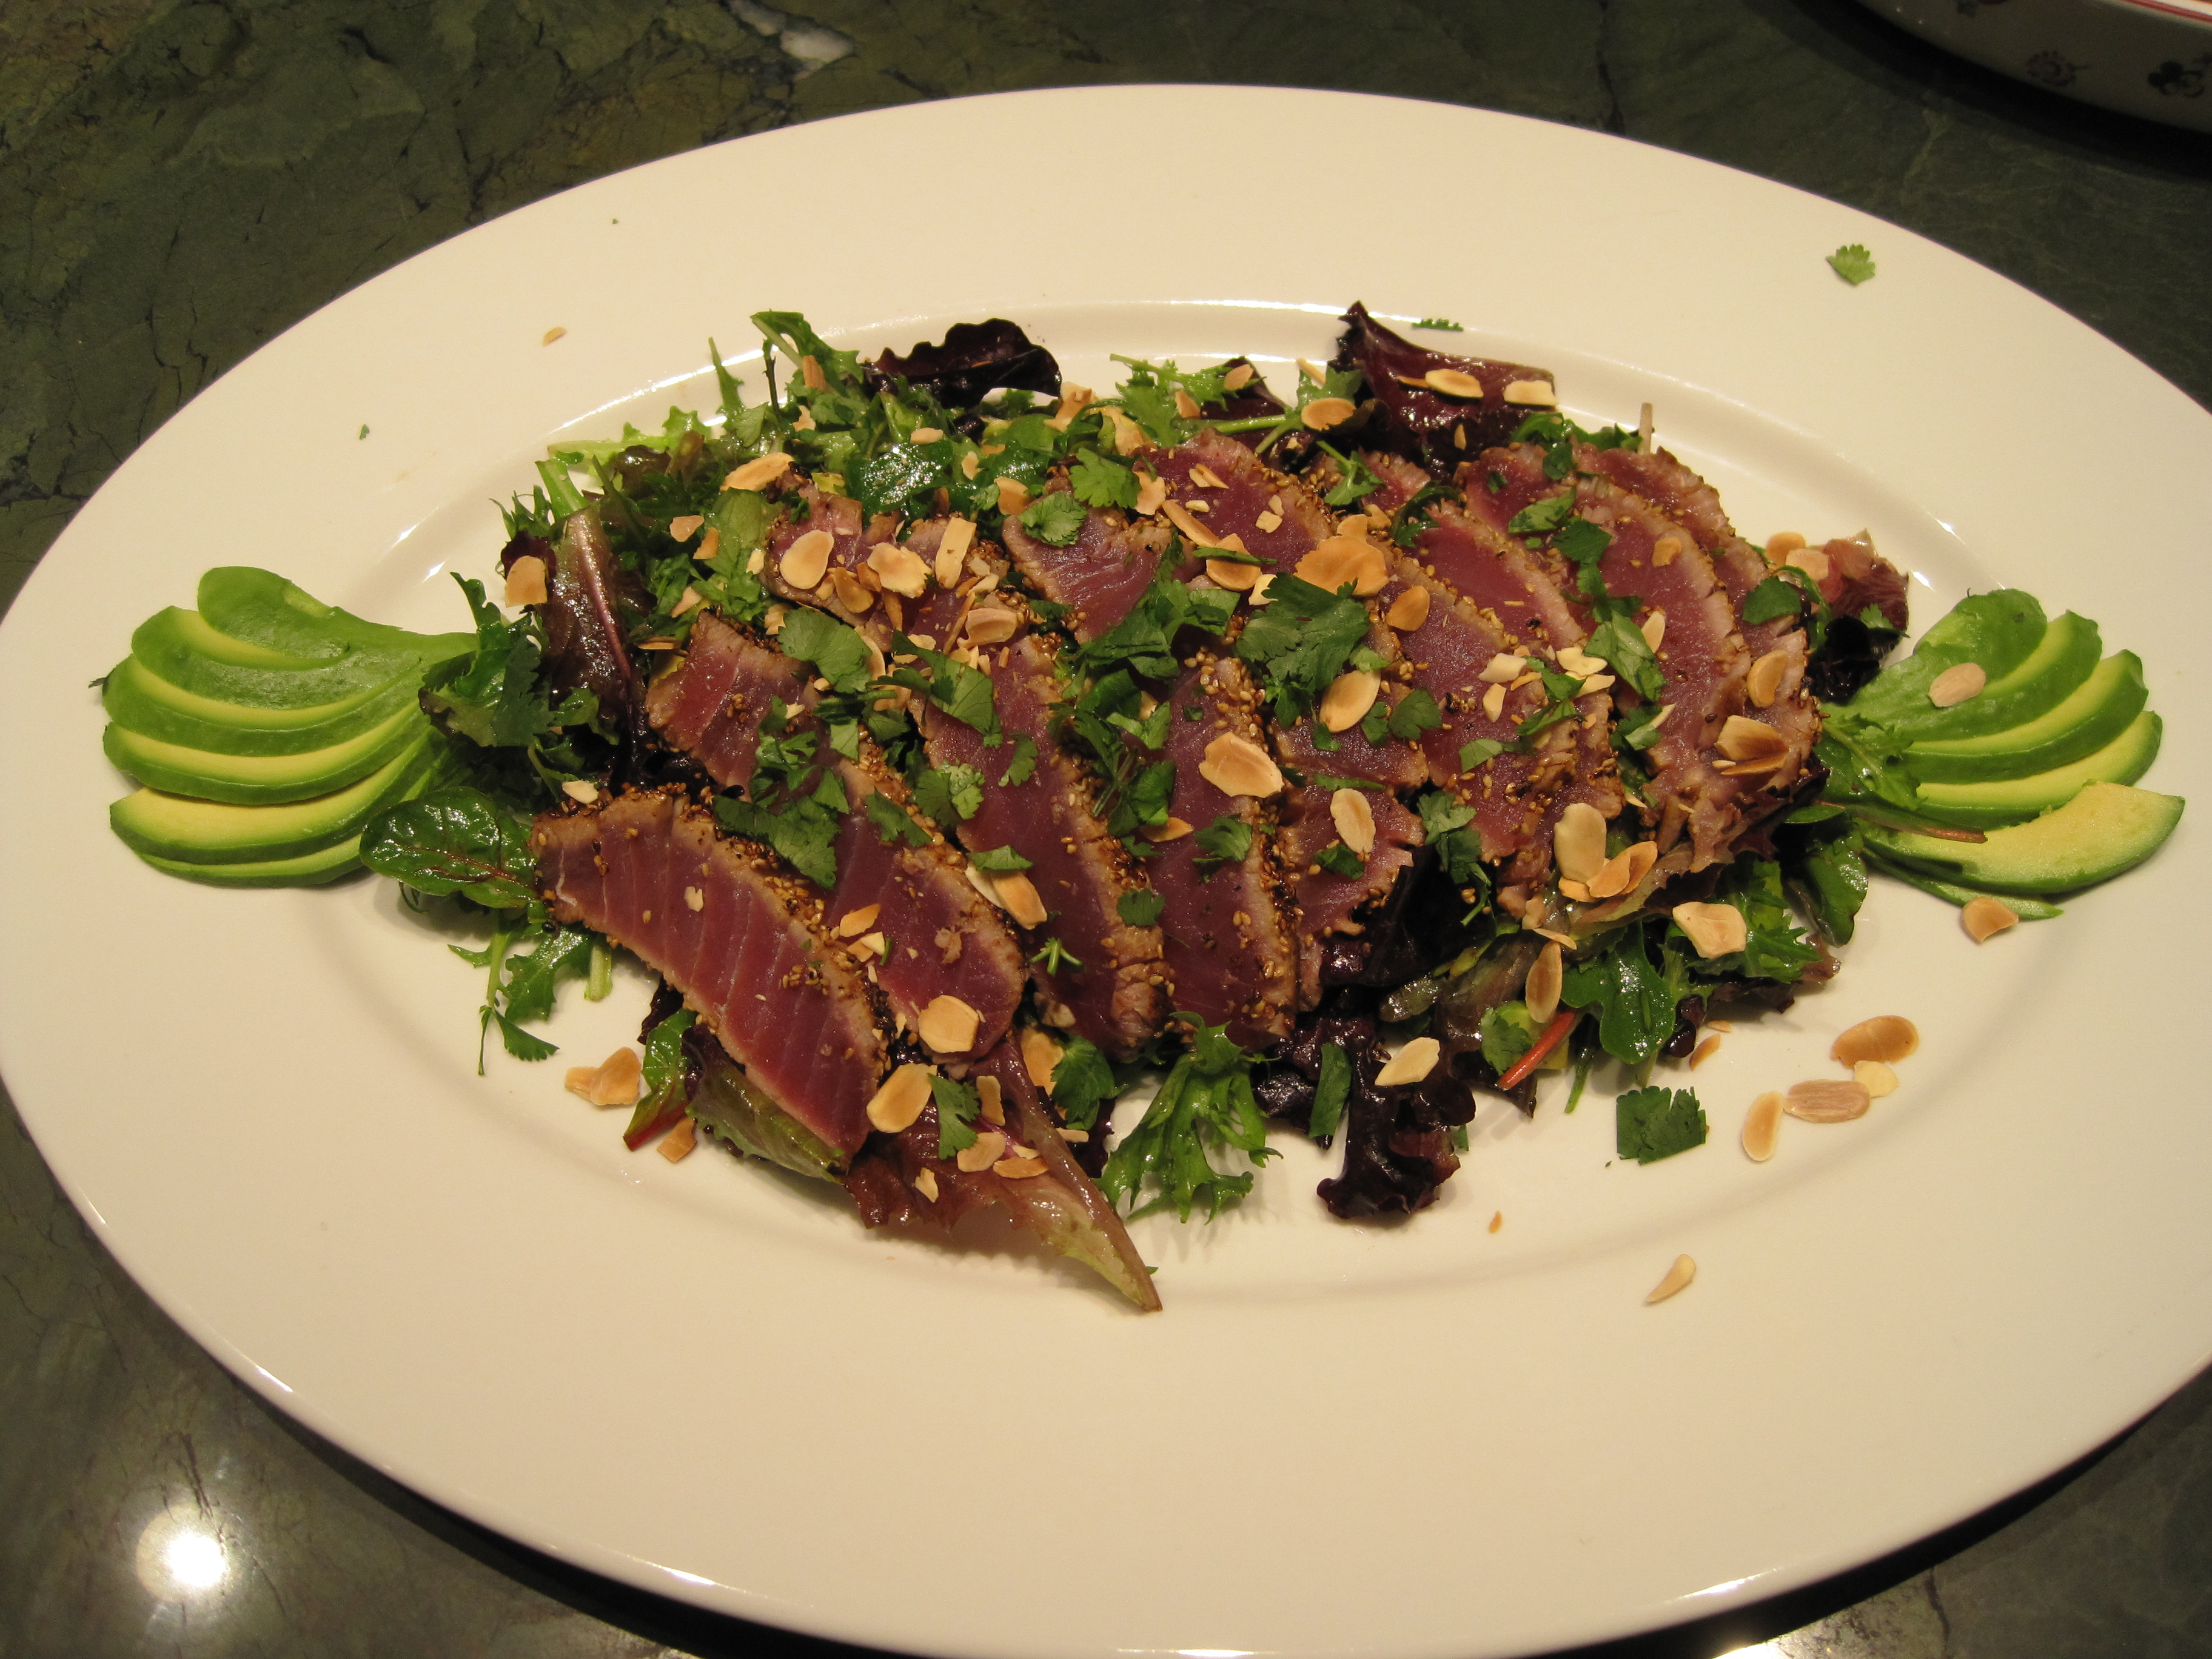 Seared Ahi Tuna Salad with a Ginger Vinaigrette | Taylor Made Menus